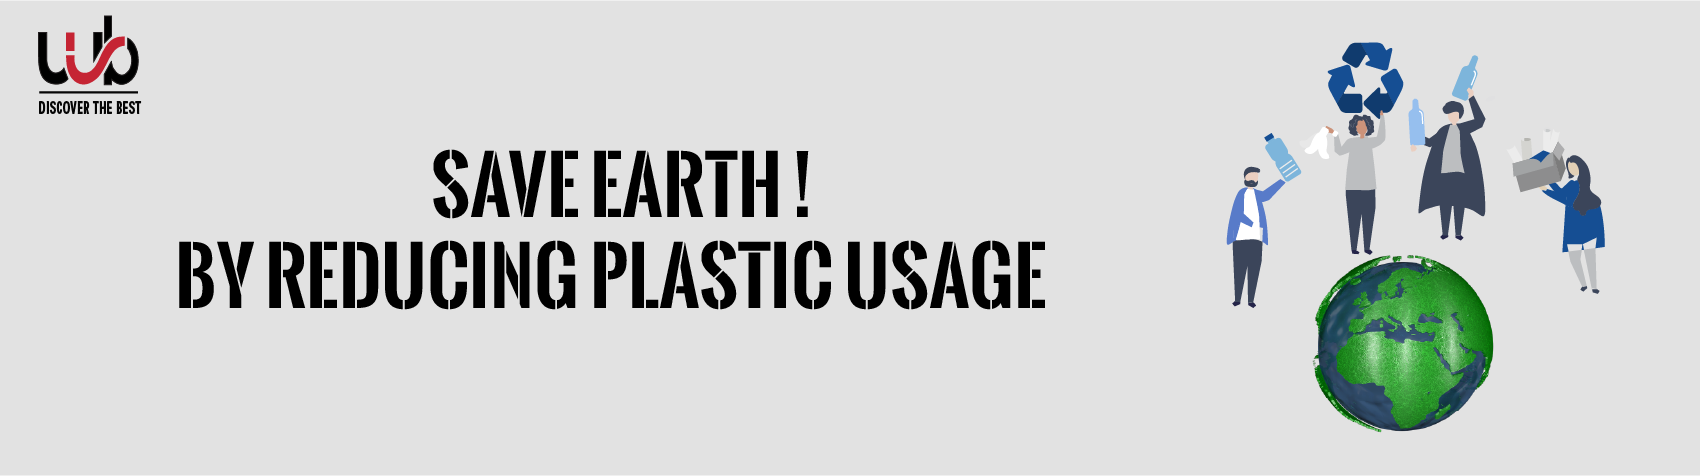 Save Earth! By Reducing Plastic Usage